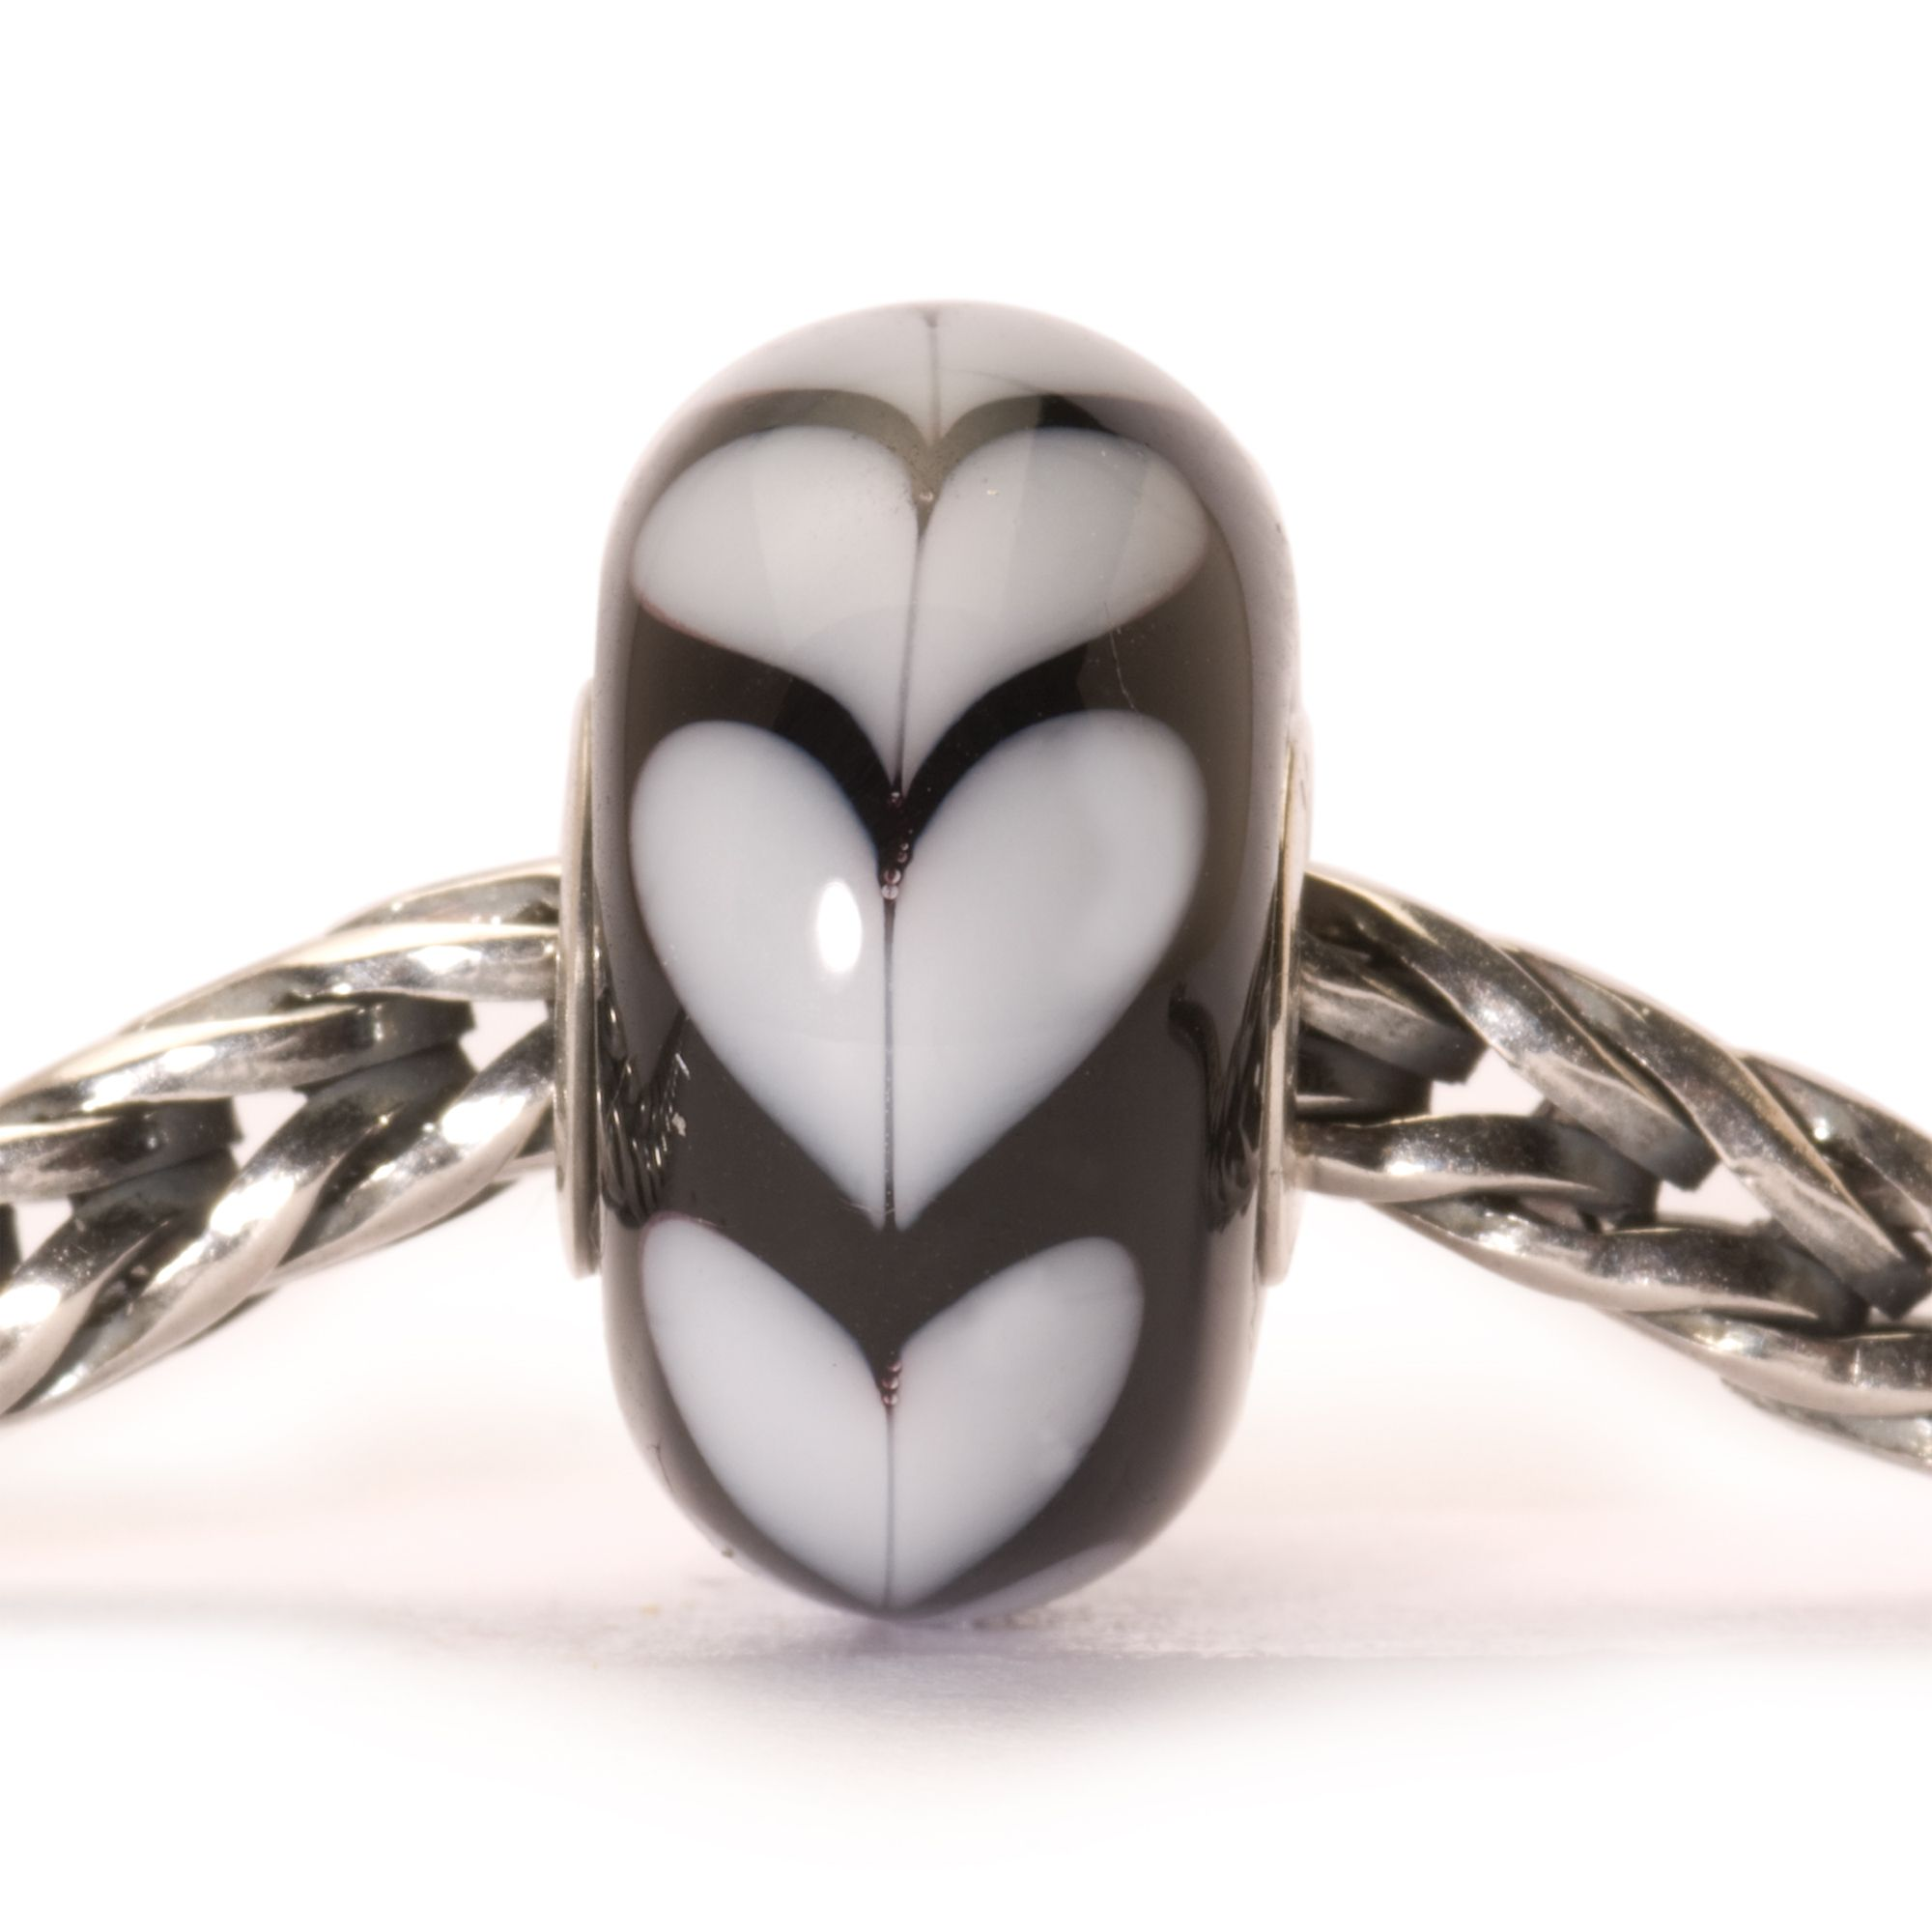 Heart glass charm bead